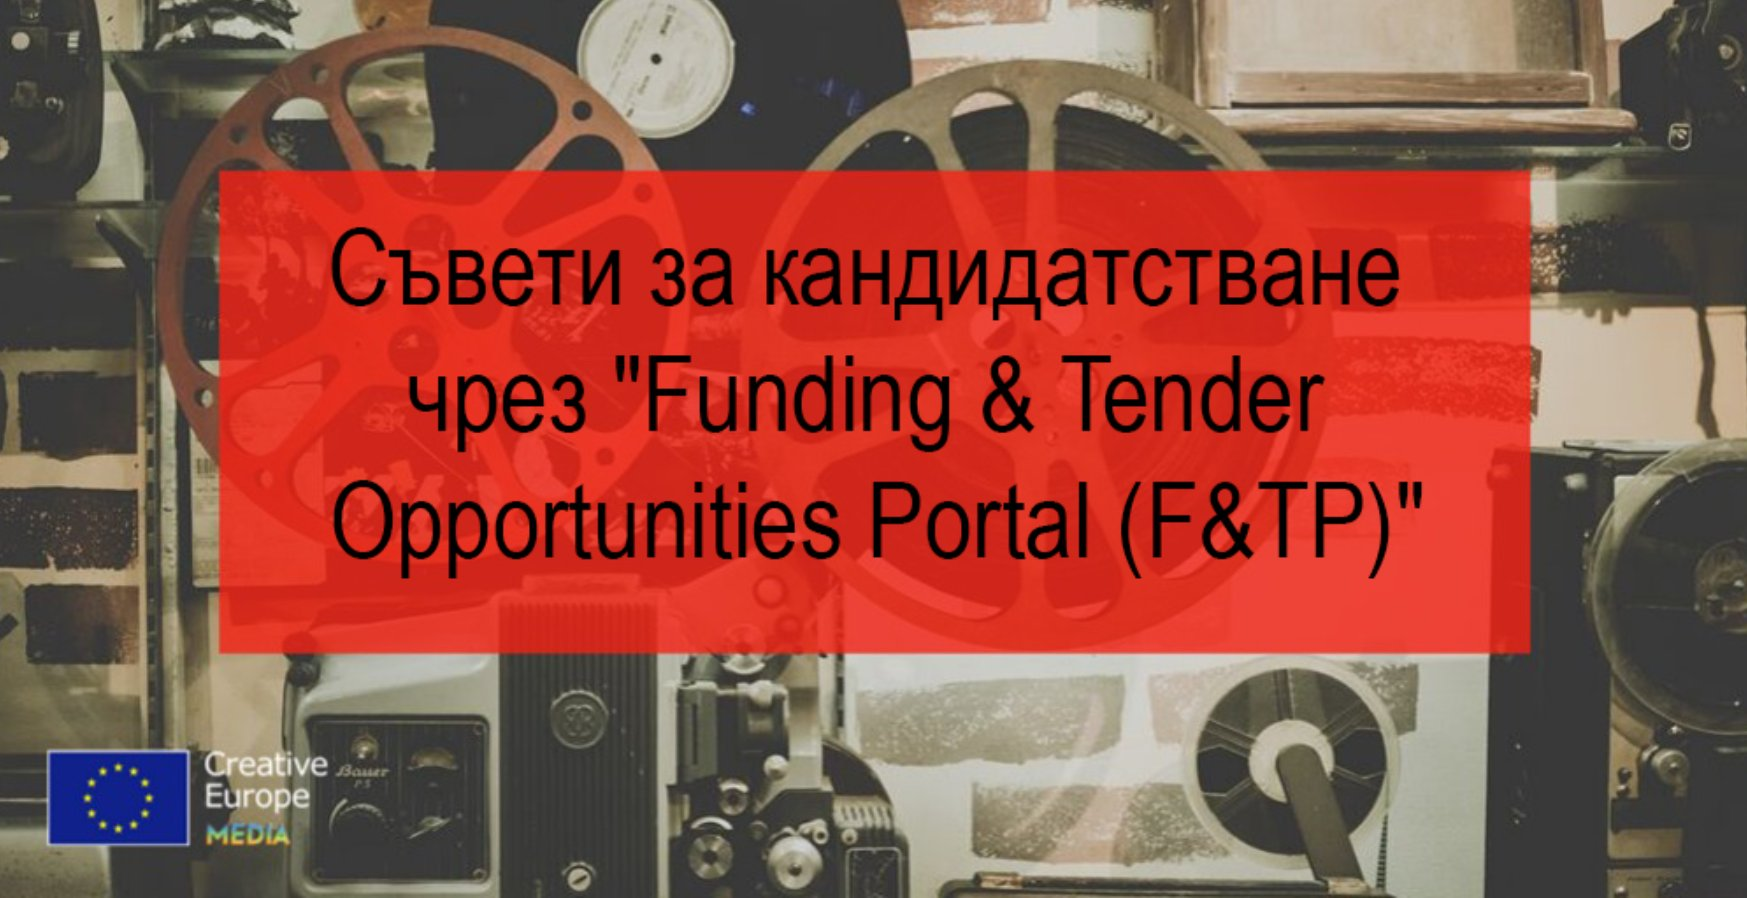 FUNDING & TENDER OPPORTUNITIES PORTAL (F&TP) APPLICATION TIPS